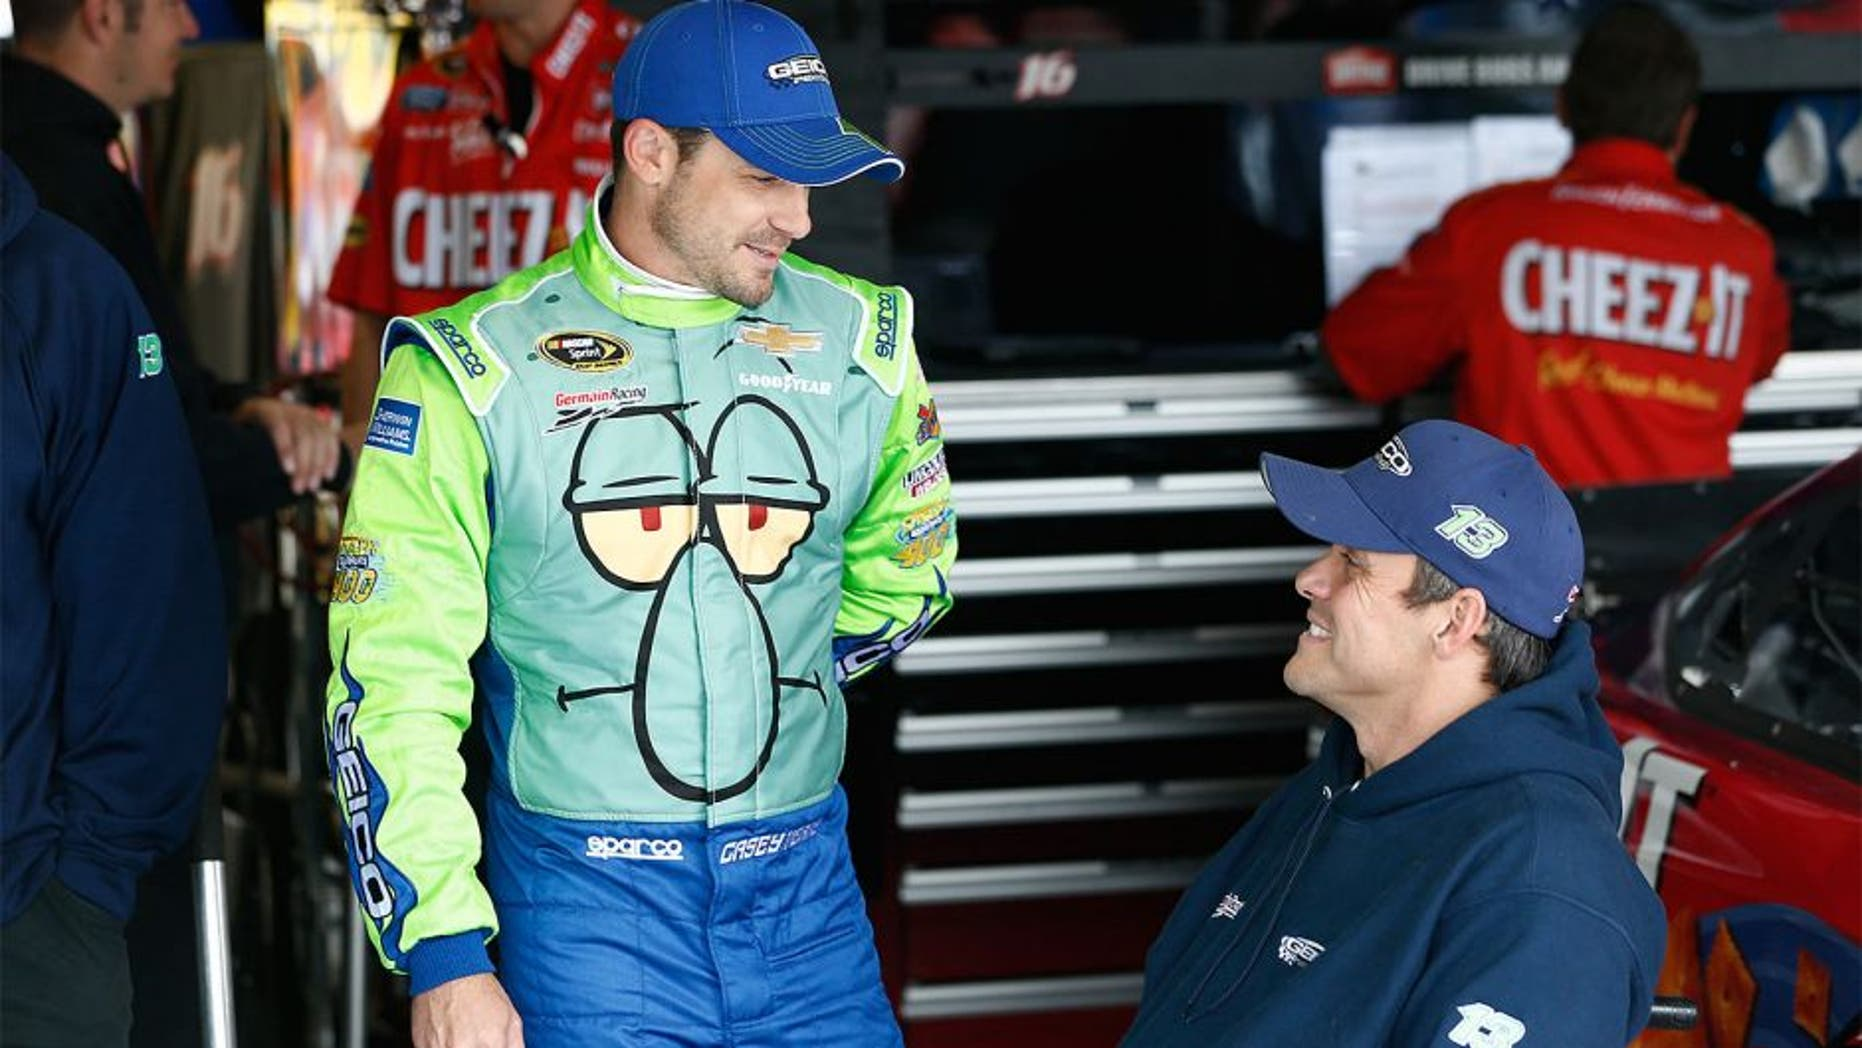 KANSAS CITY, KS - MAY 08: Casey Mears, driver of the #13 Squidward Tentacles Chevrolet, stands in the garage area during practice for the NASCAR Sprint Cup Series SpongeBob SquarePants 400 at Kansas Speedway on May 8, 2015 in Kansas City, Kansas. (Photo by Jeff Zelevansky/Getty Images)